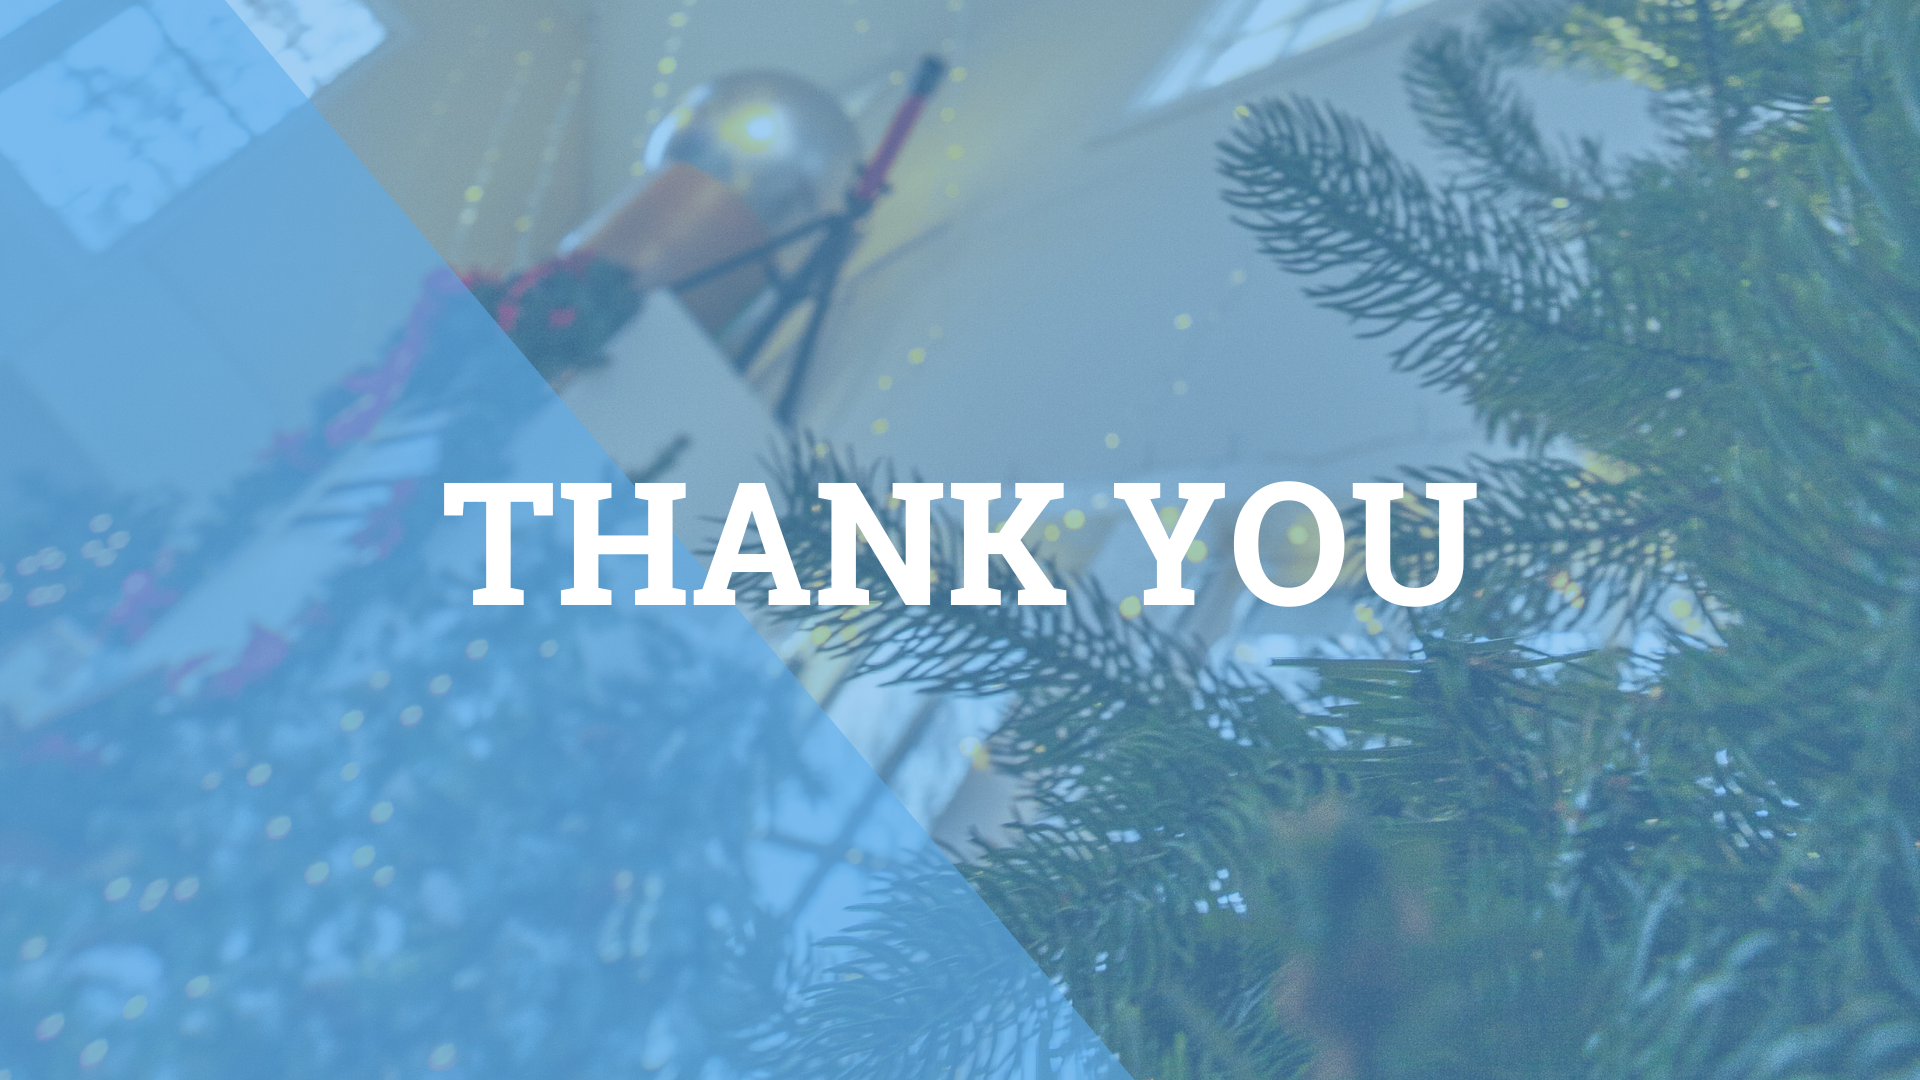 Thank You! Holiday Background